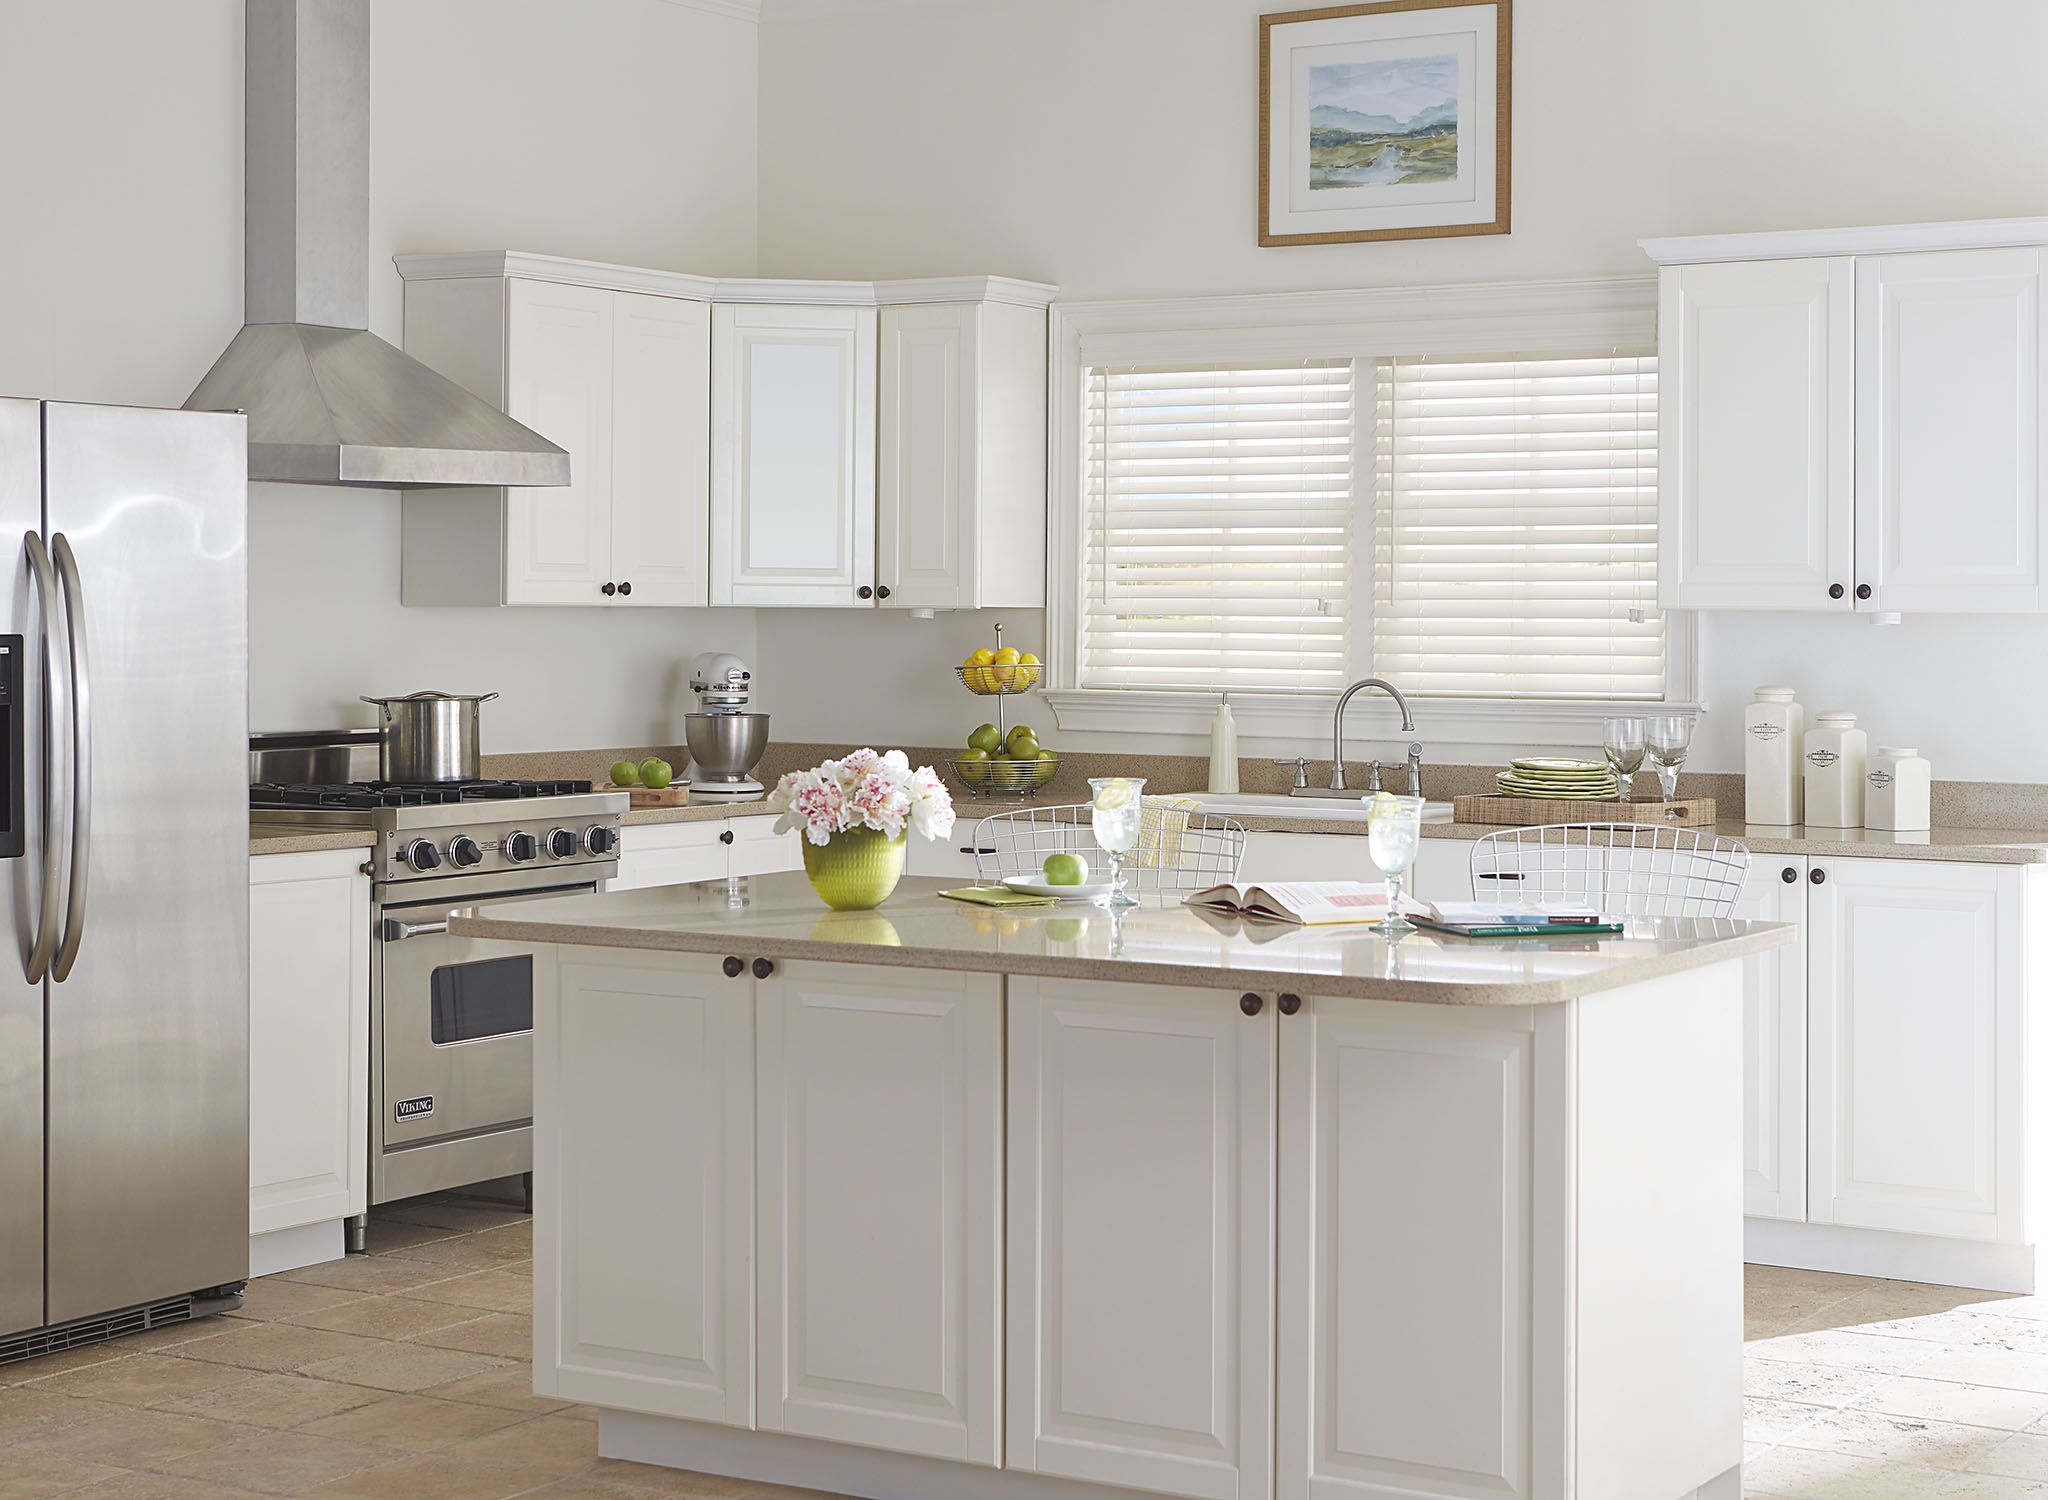 Bright, contemporary kitchen with white walls, white cabinets and white window blinds.